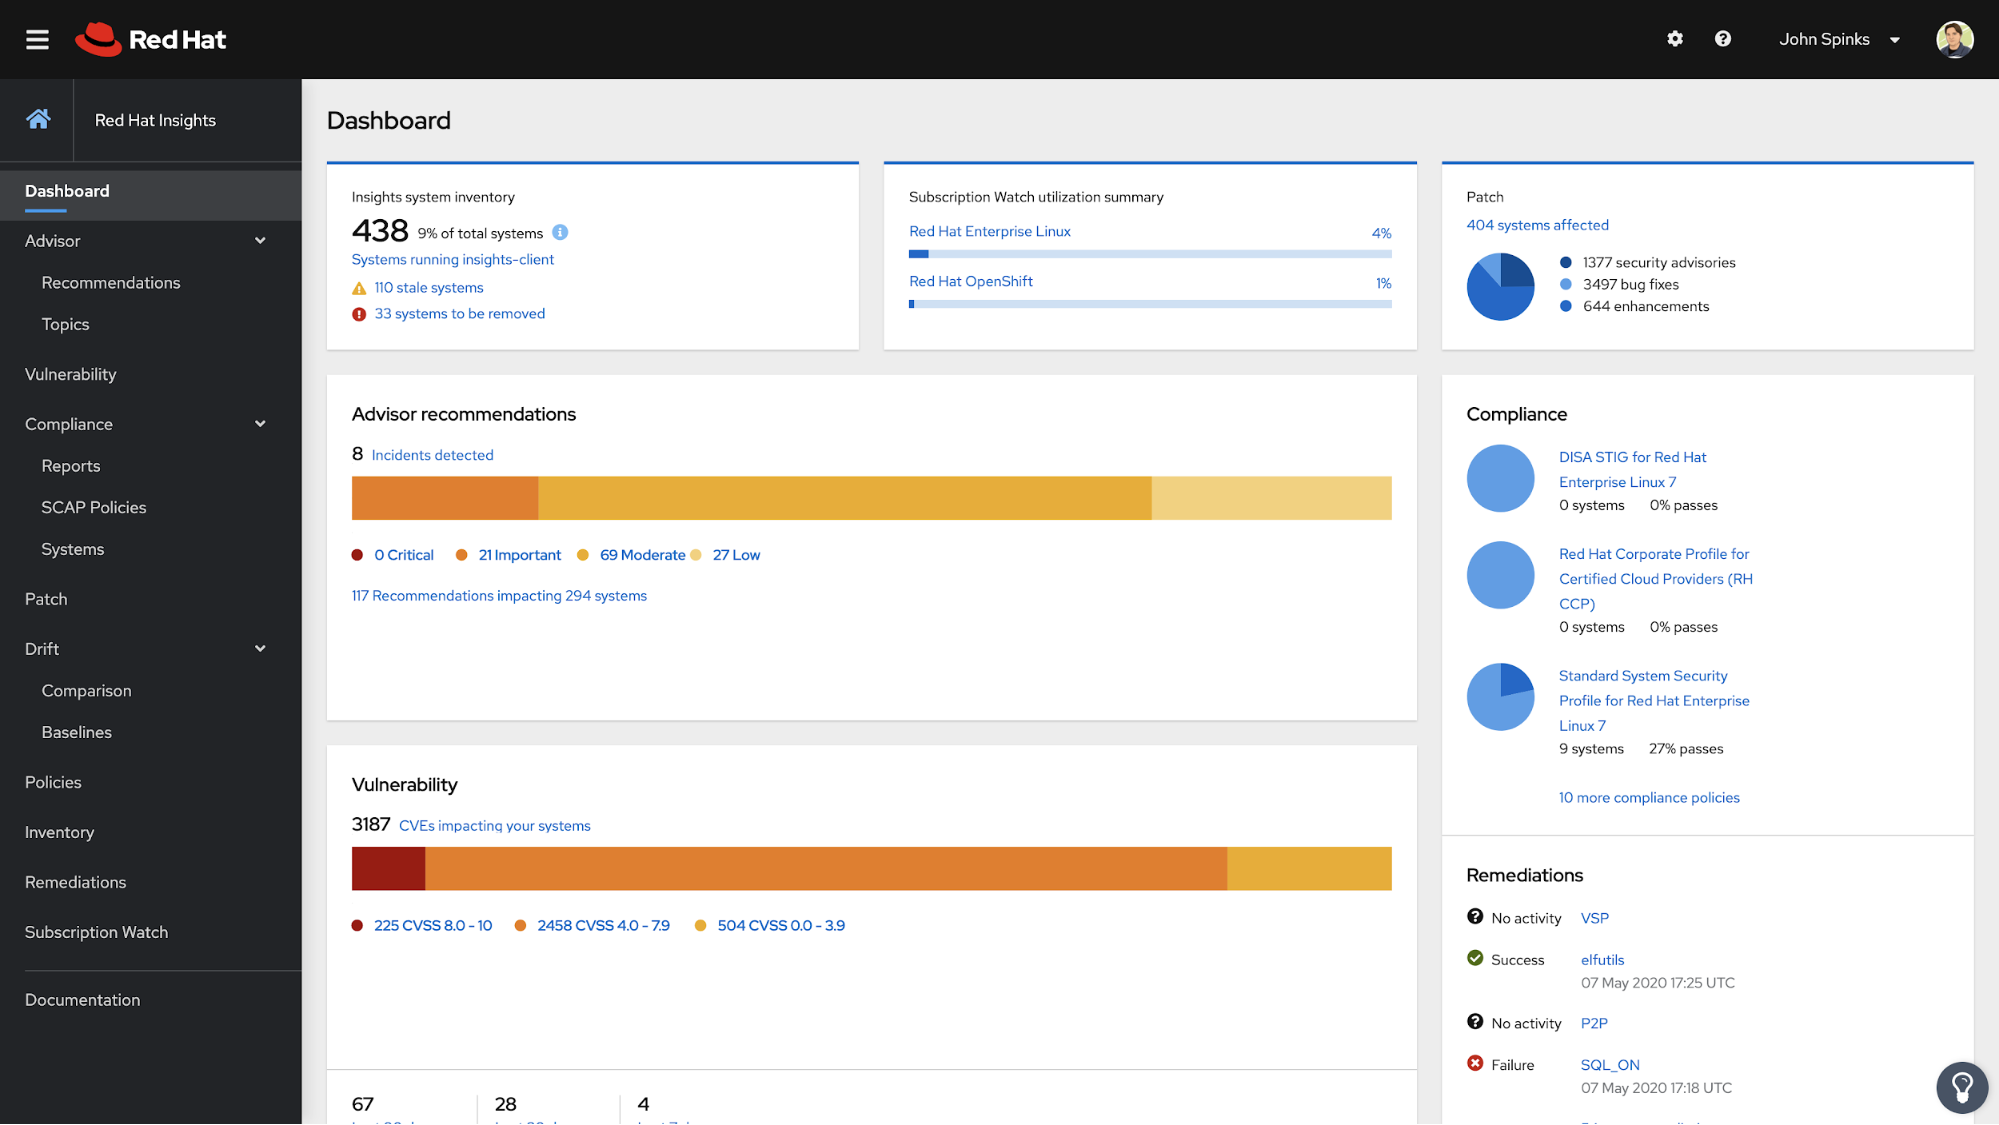 Red Hat Insights dashboard